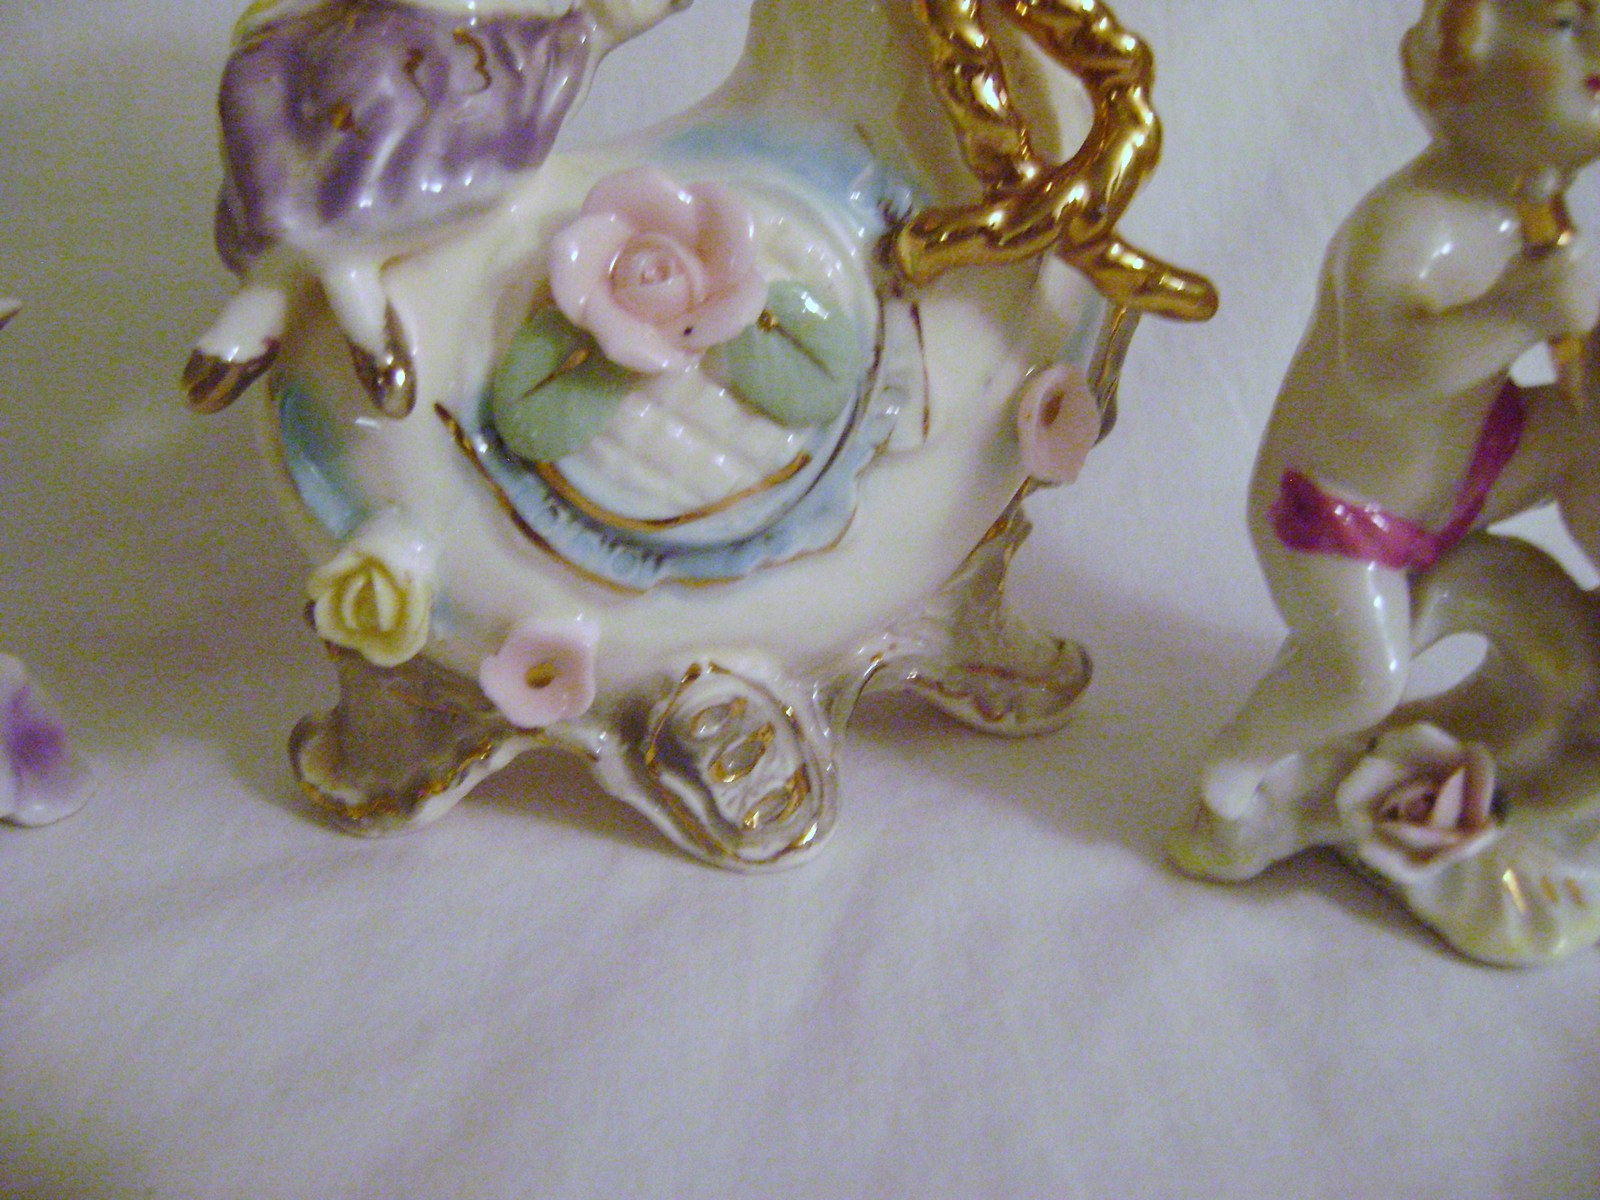 Vintage Victorian Style Vases with attached Figures